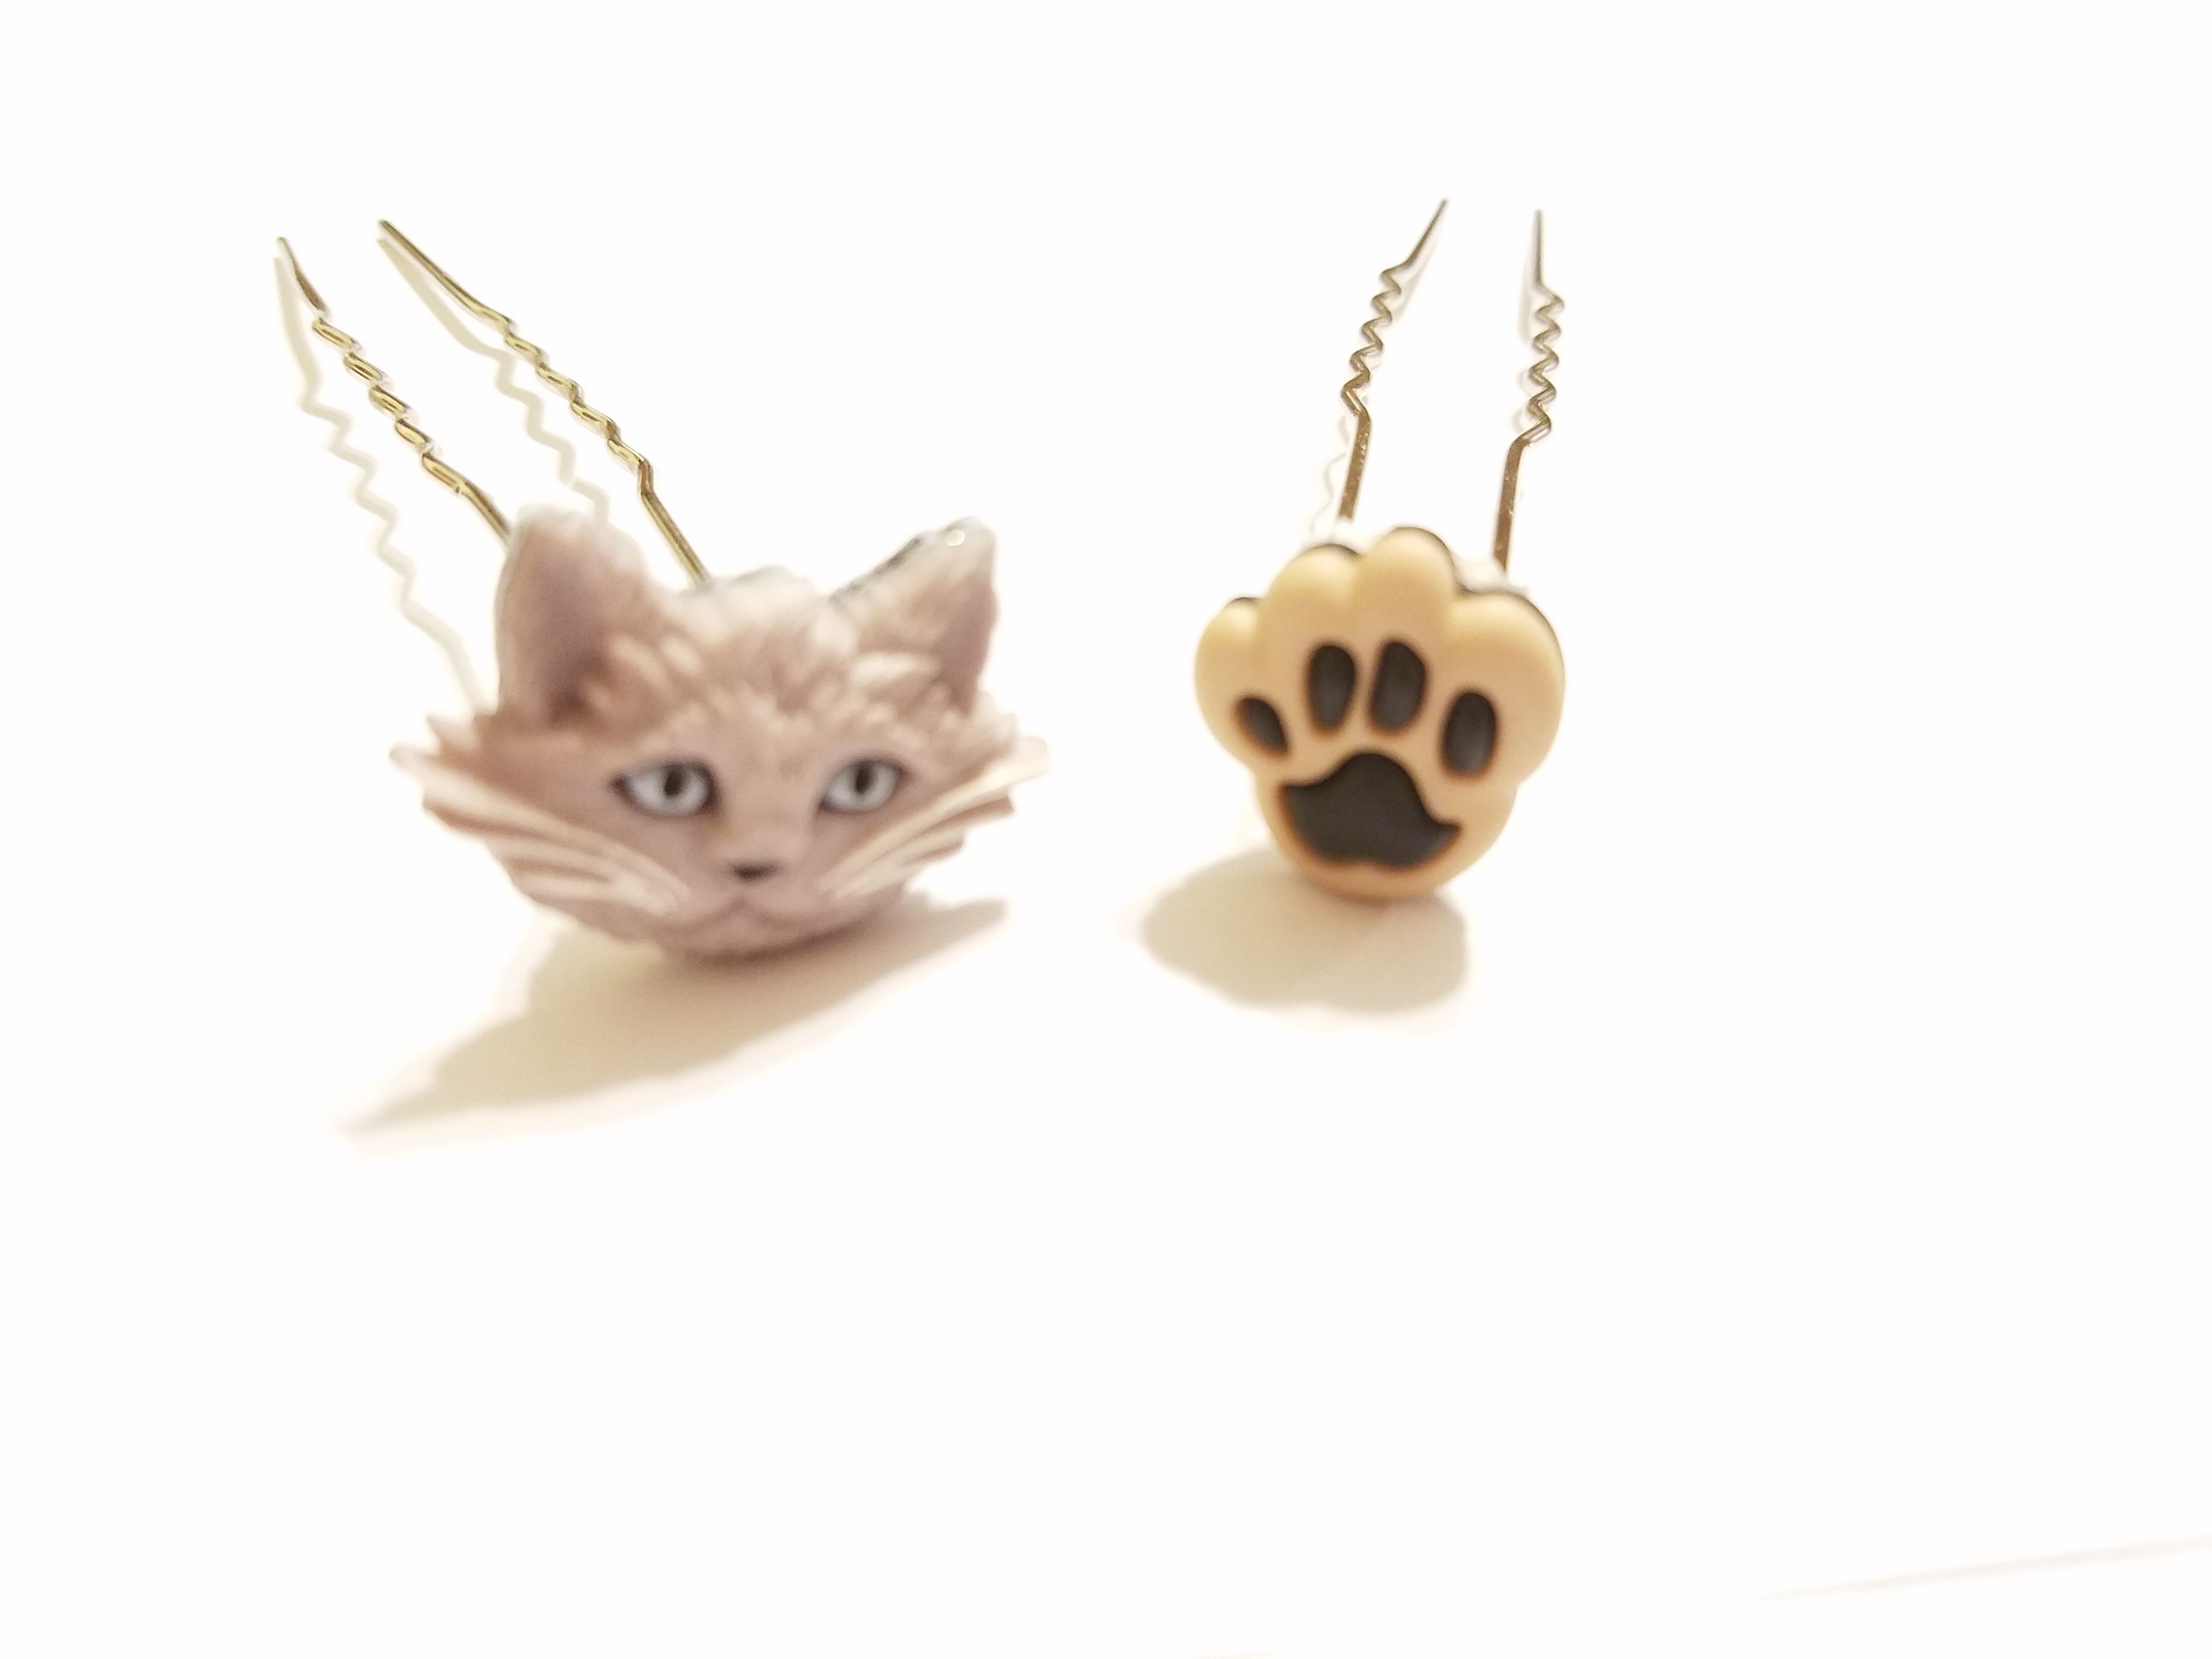 kriszcreations graycats gifts hairjewelry hairpins cats